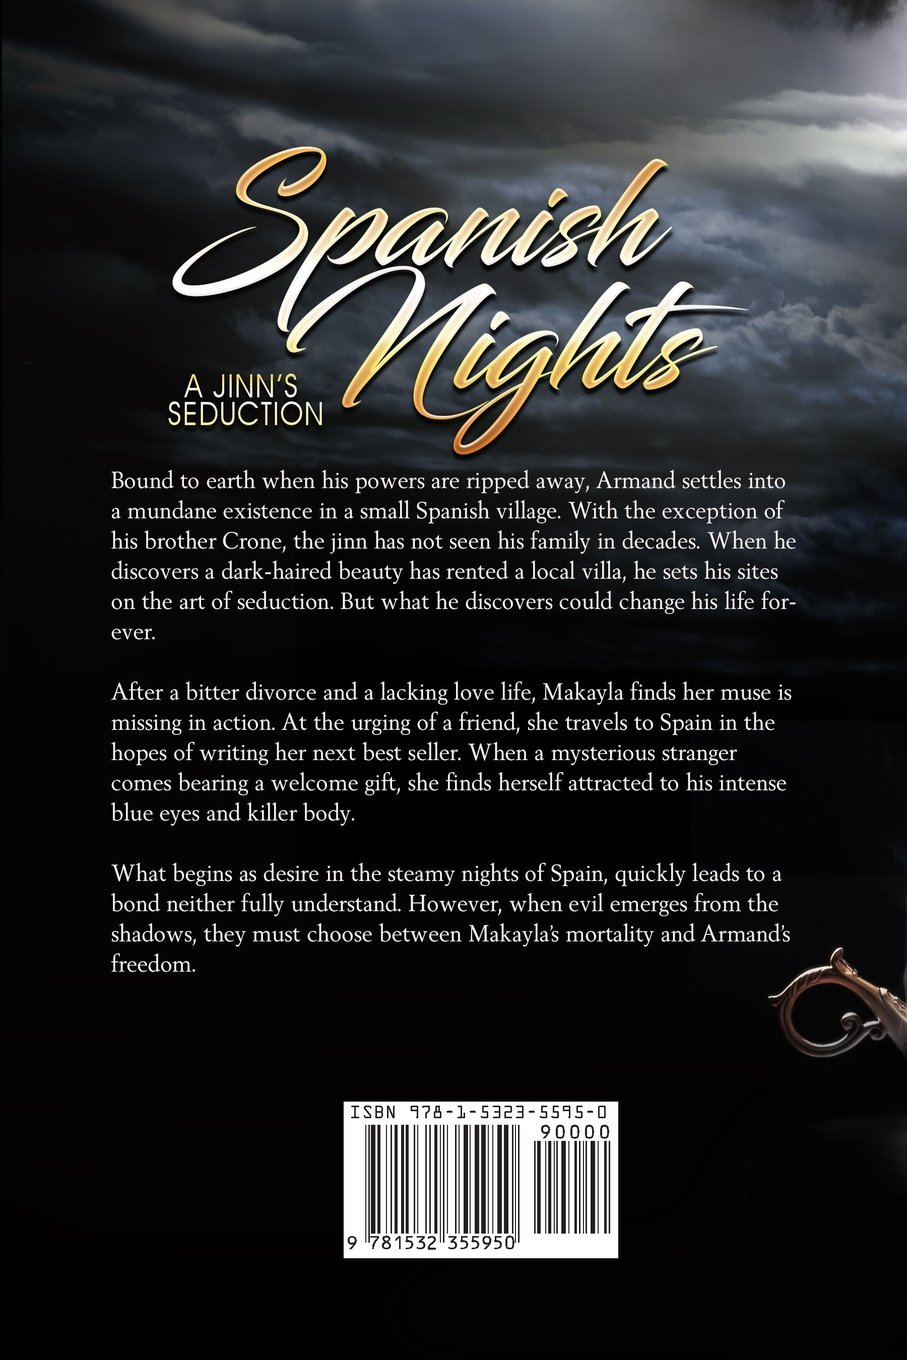 Spanish Nights (Jinn's Seduction): Valerie Twombly: 9781532355950